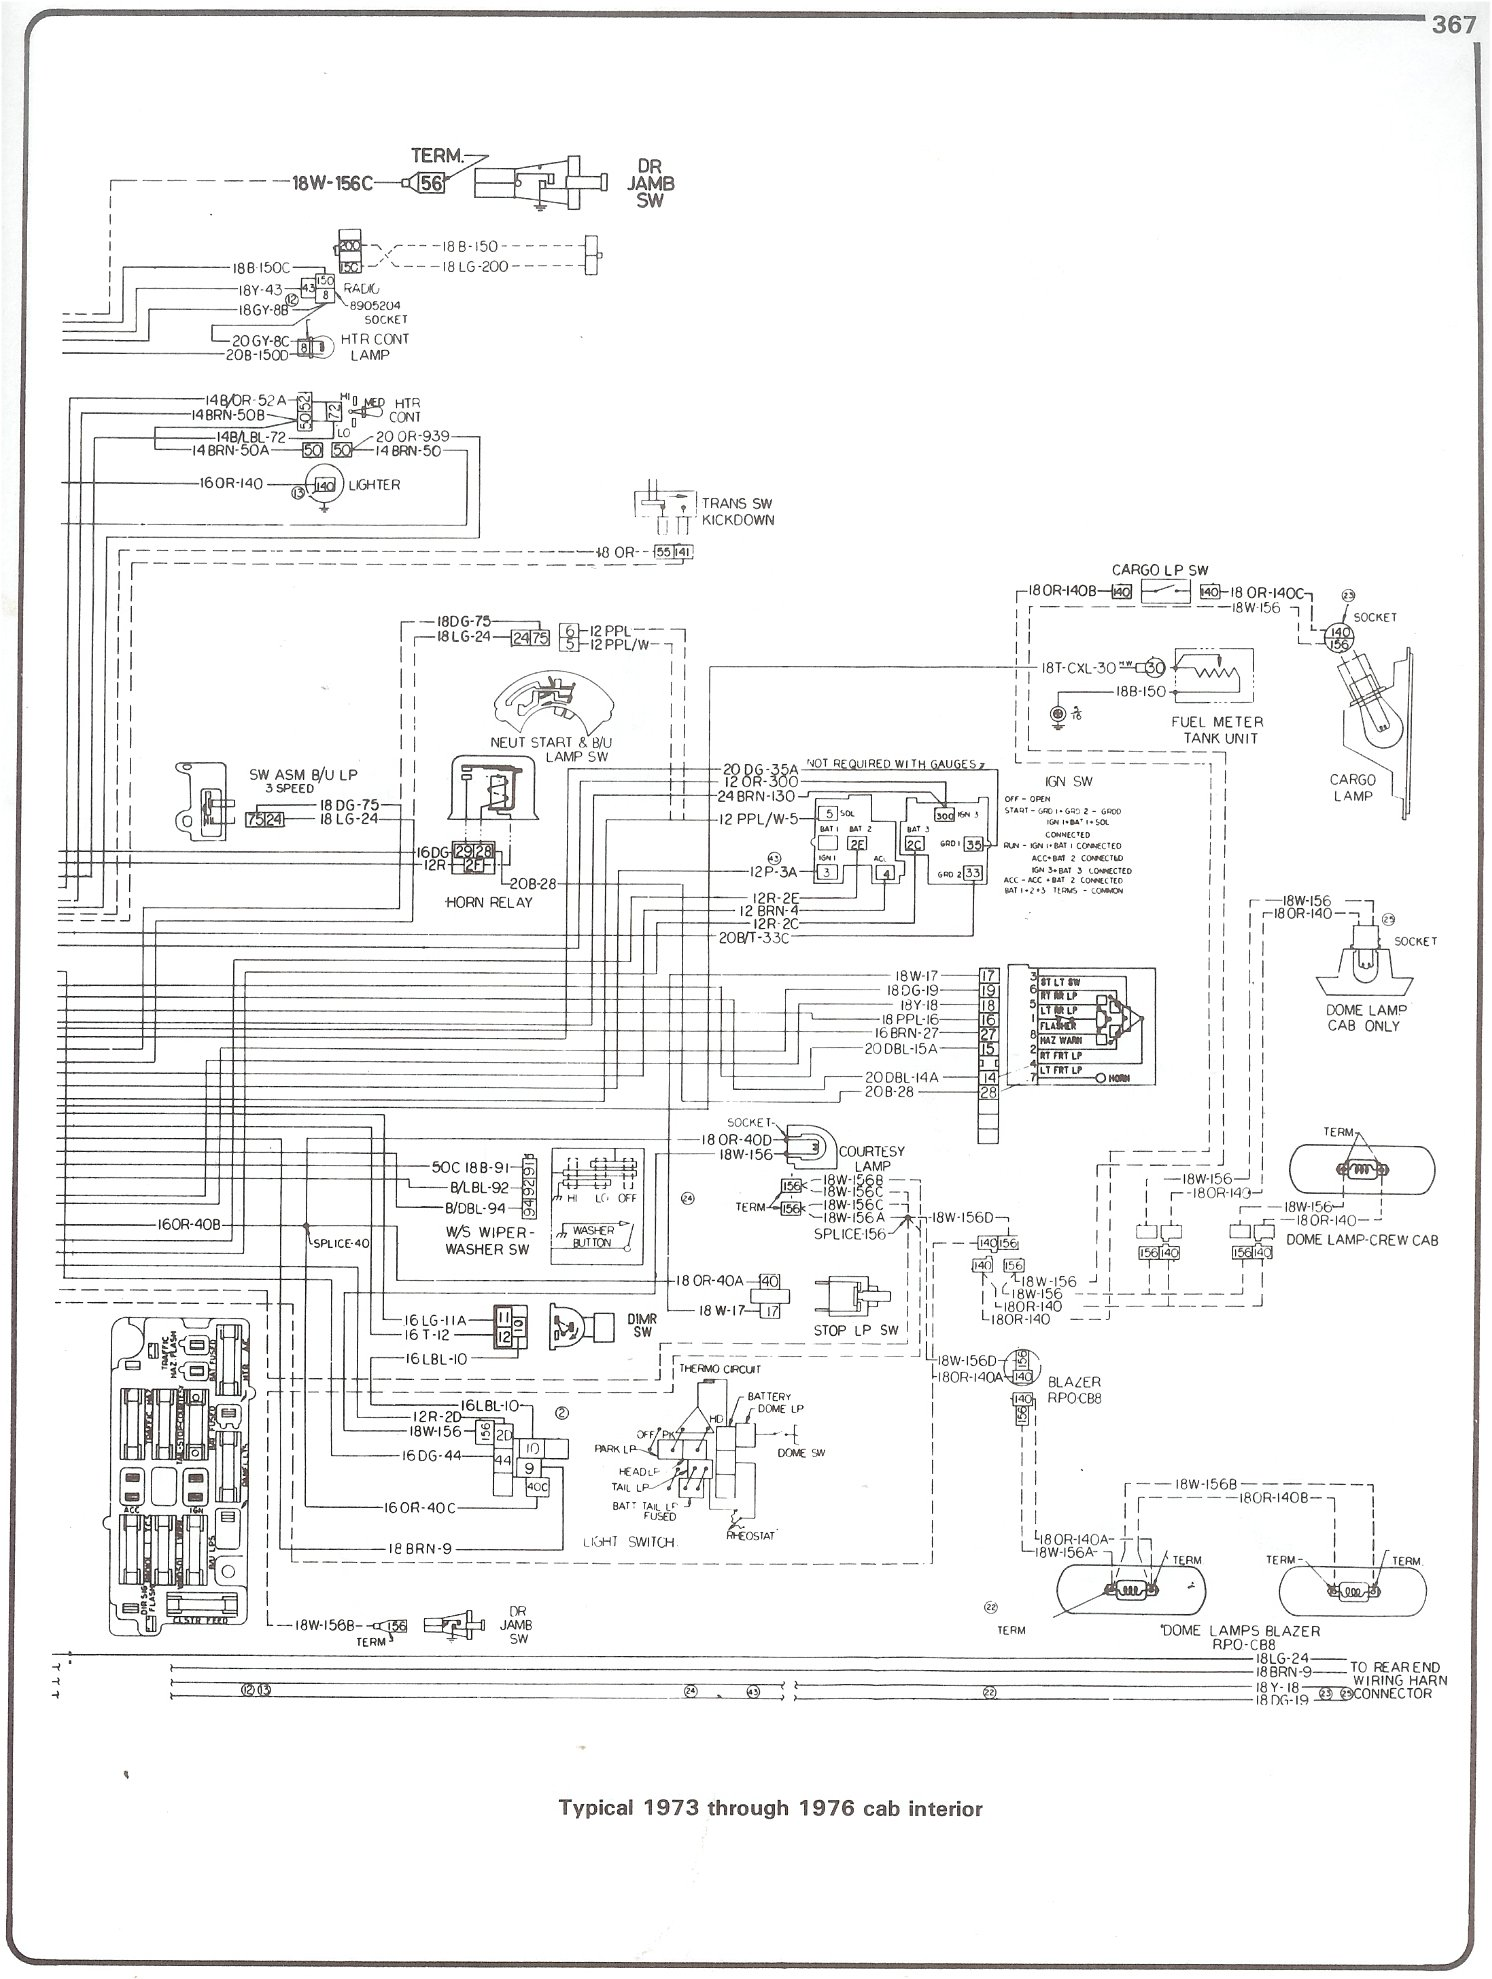 73 76_cab_inter complete 73 87 wiring diagrams 1990 Chevy Truck Wiring Diagram at fashall.co